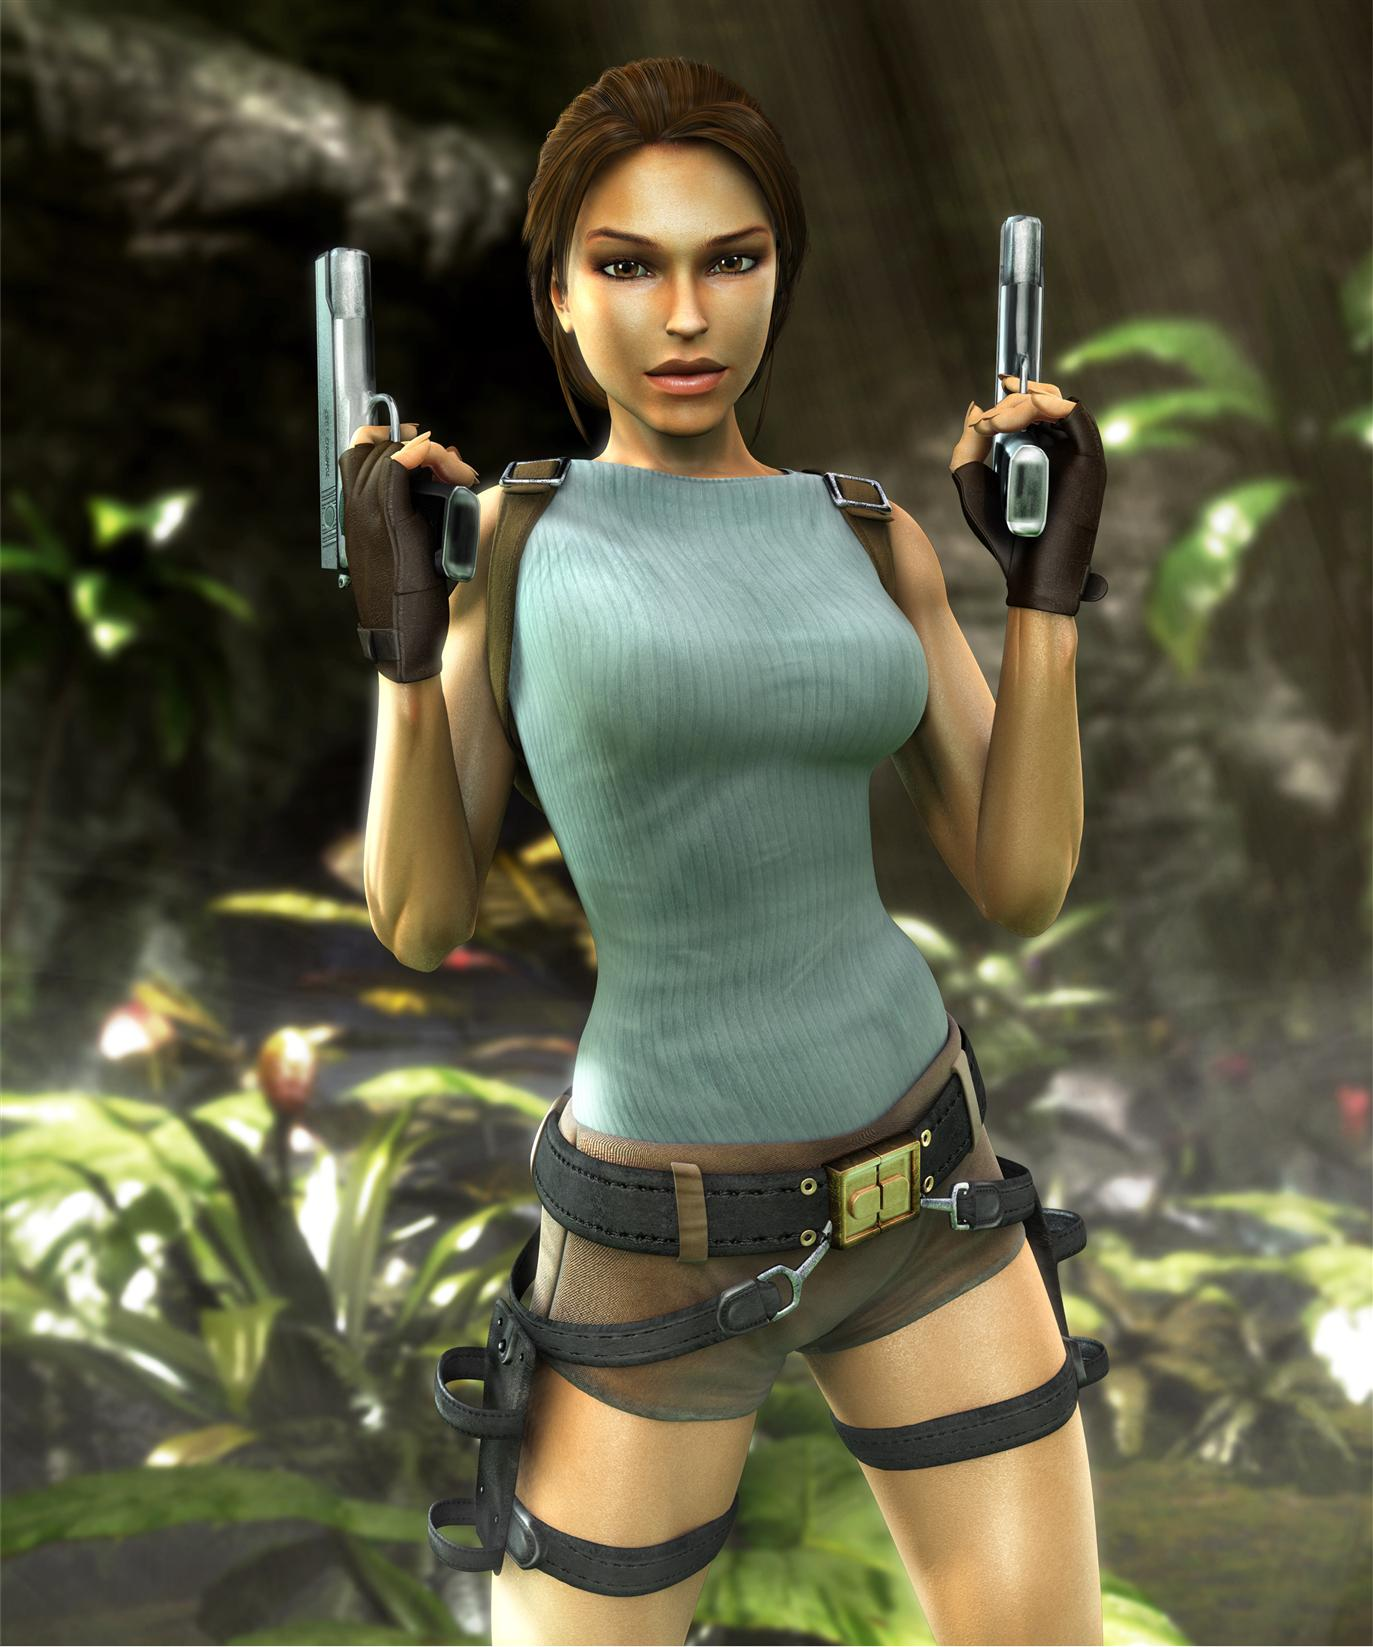 Lara croft cartoon anal sex pixs sex females